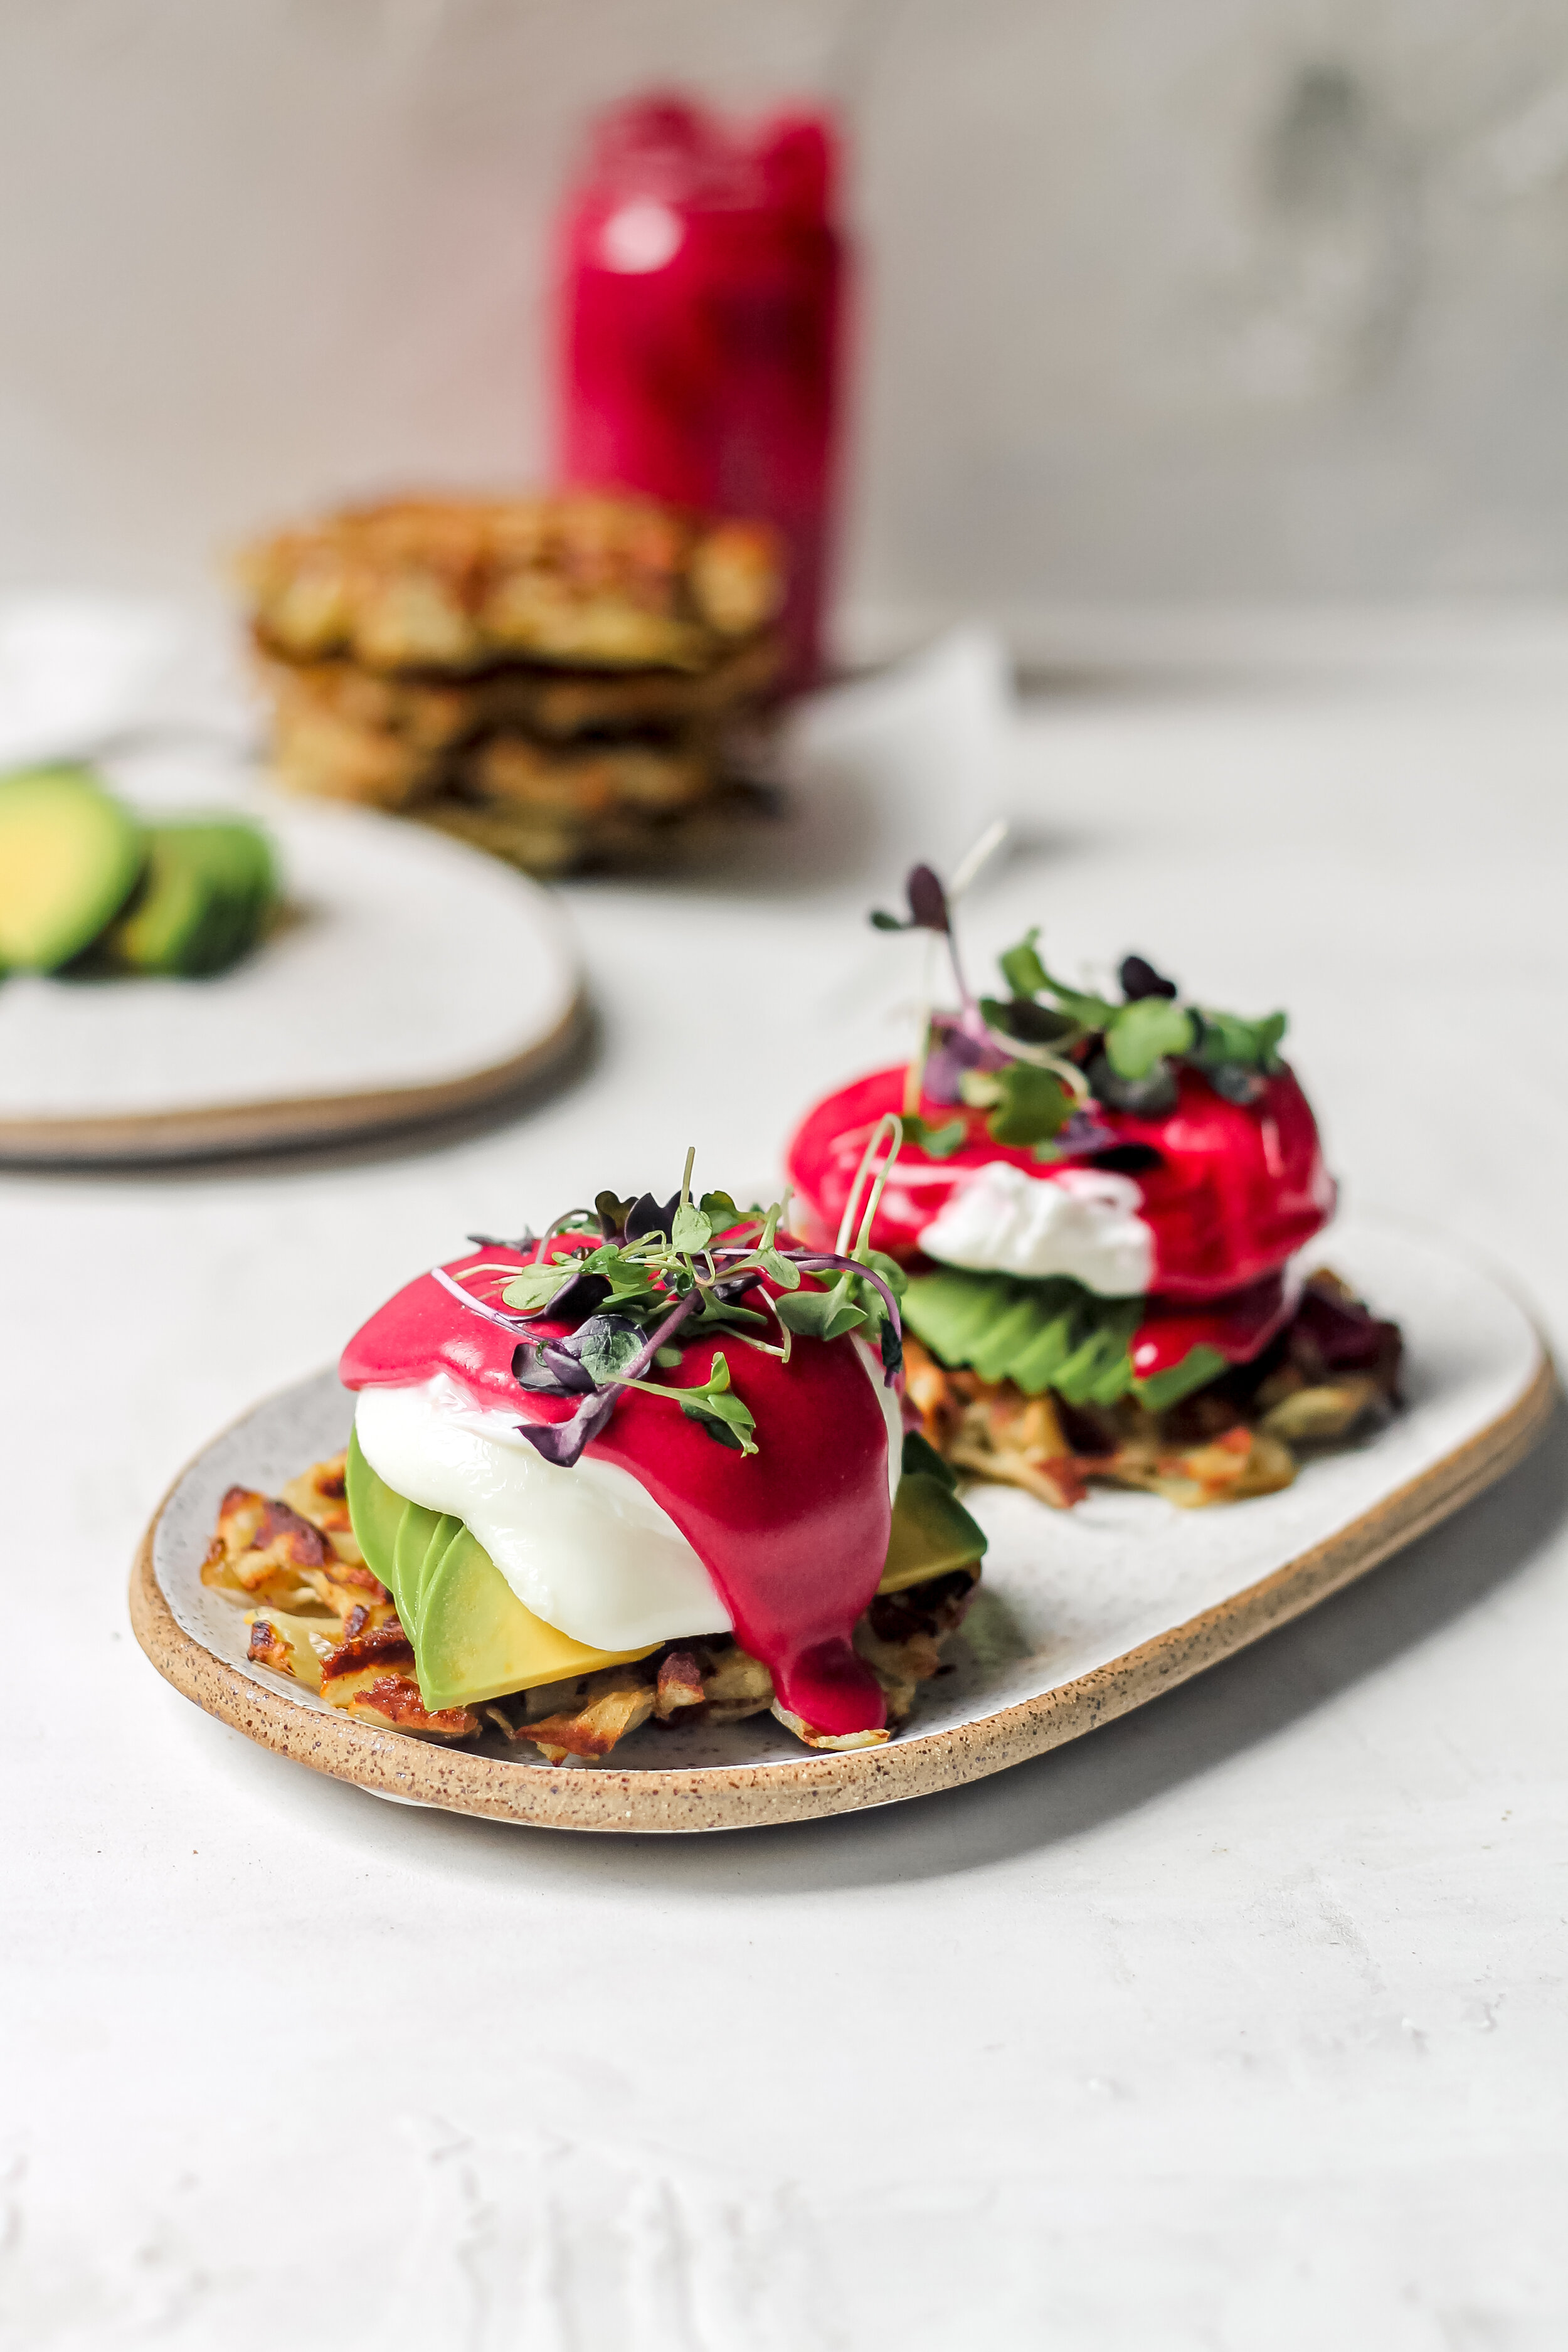 01/01/2019· how to keep hash browns tender and moist (not dry) brush your waffle iron generously with melted butter and use the nonstick cooking spray. Poached Eggs On Waffle Iron Hash Browns Avo W Beetroot Hollandaise Paleo Gf Df Clean Eats Factory